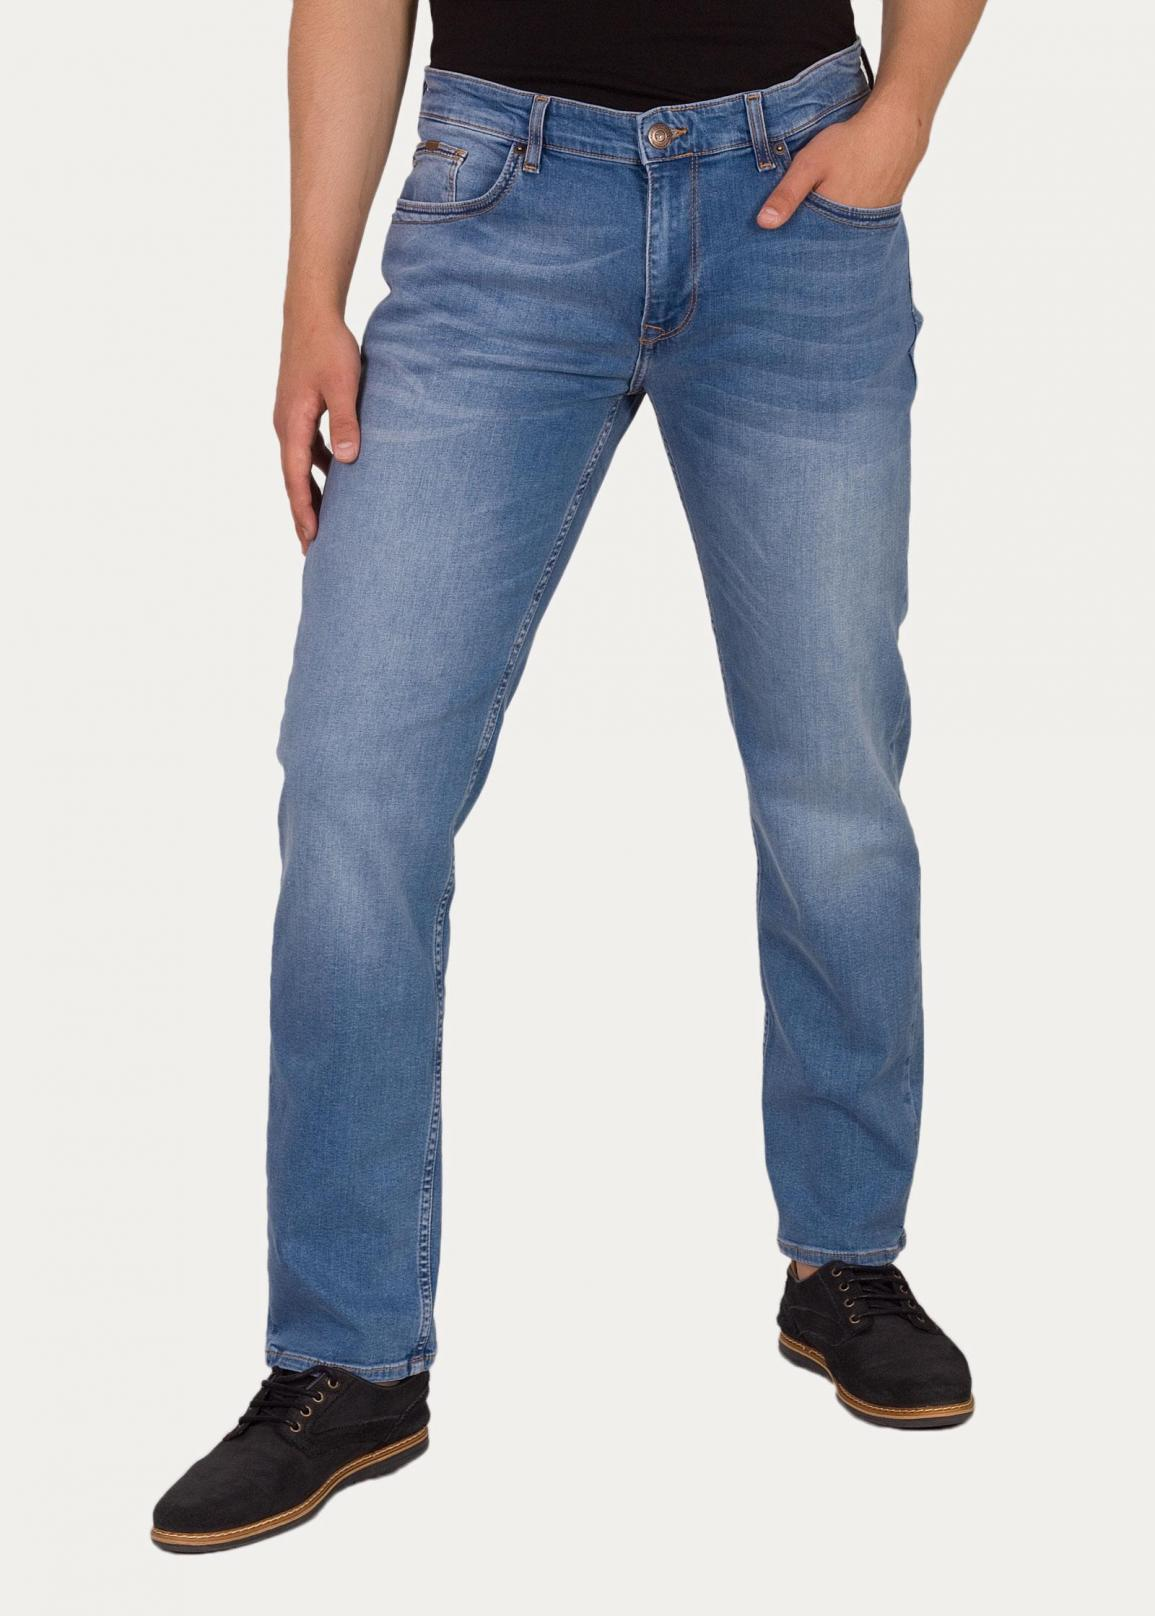 Cross Jeans® Jack - Denim Blue (595)